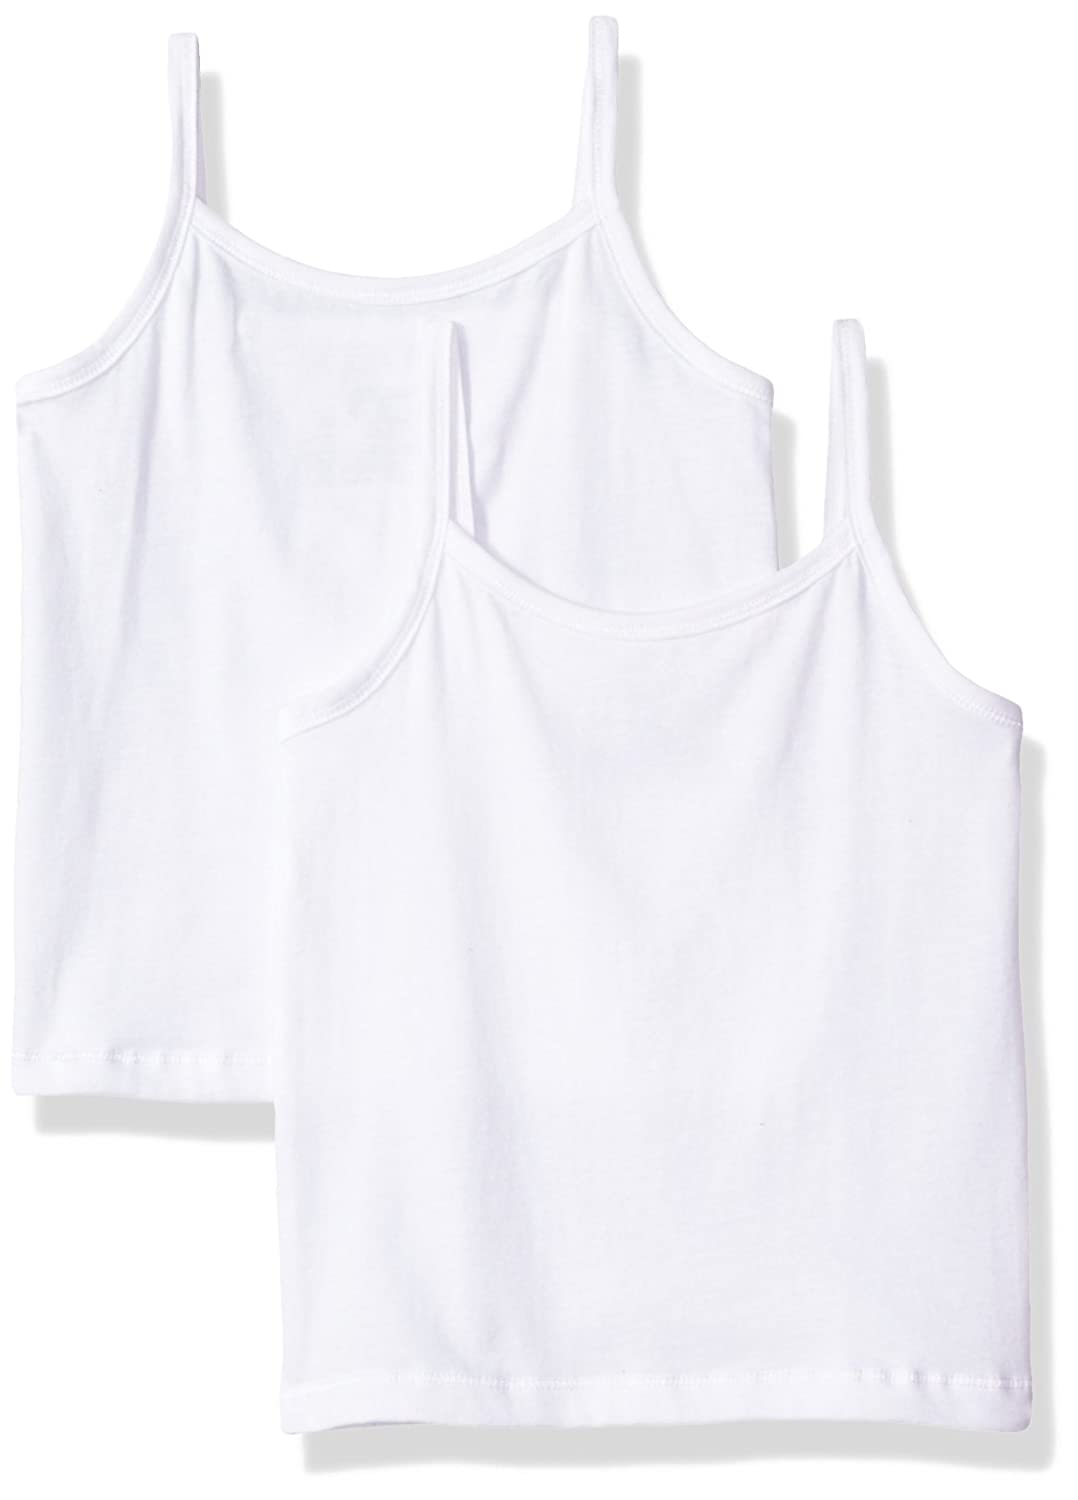 Hanes Big Girl's Ultimate Cotton Stretch 2 Pack Cami GUC37A